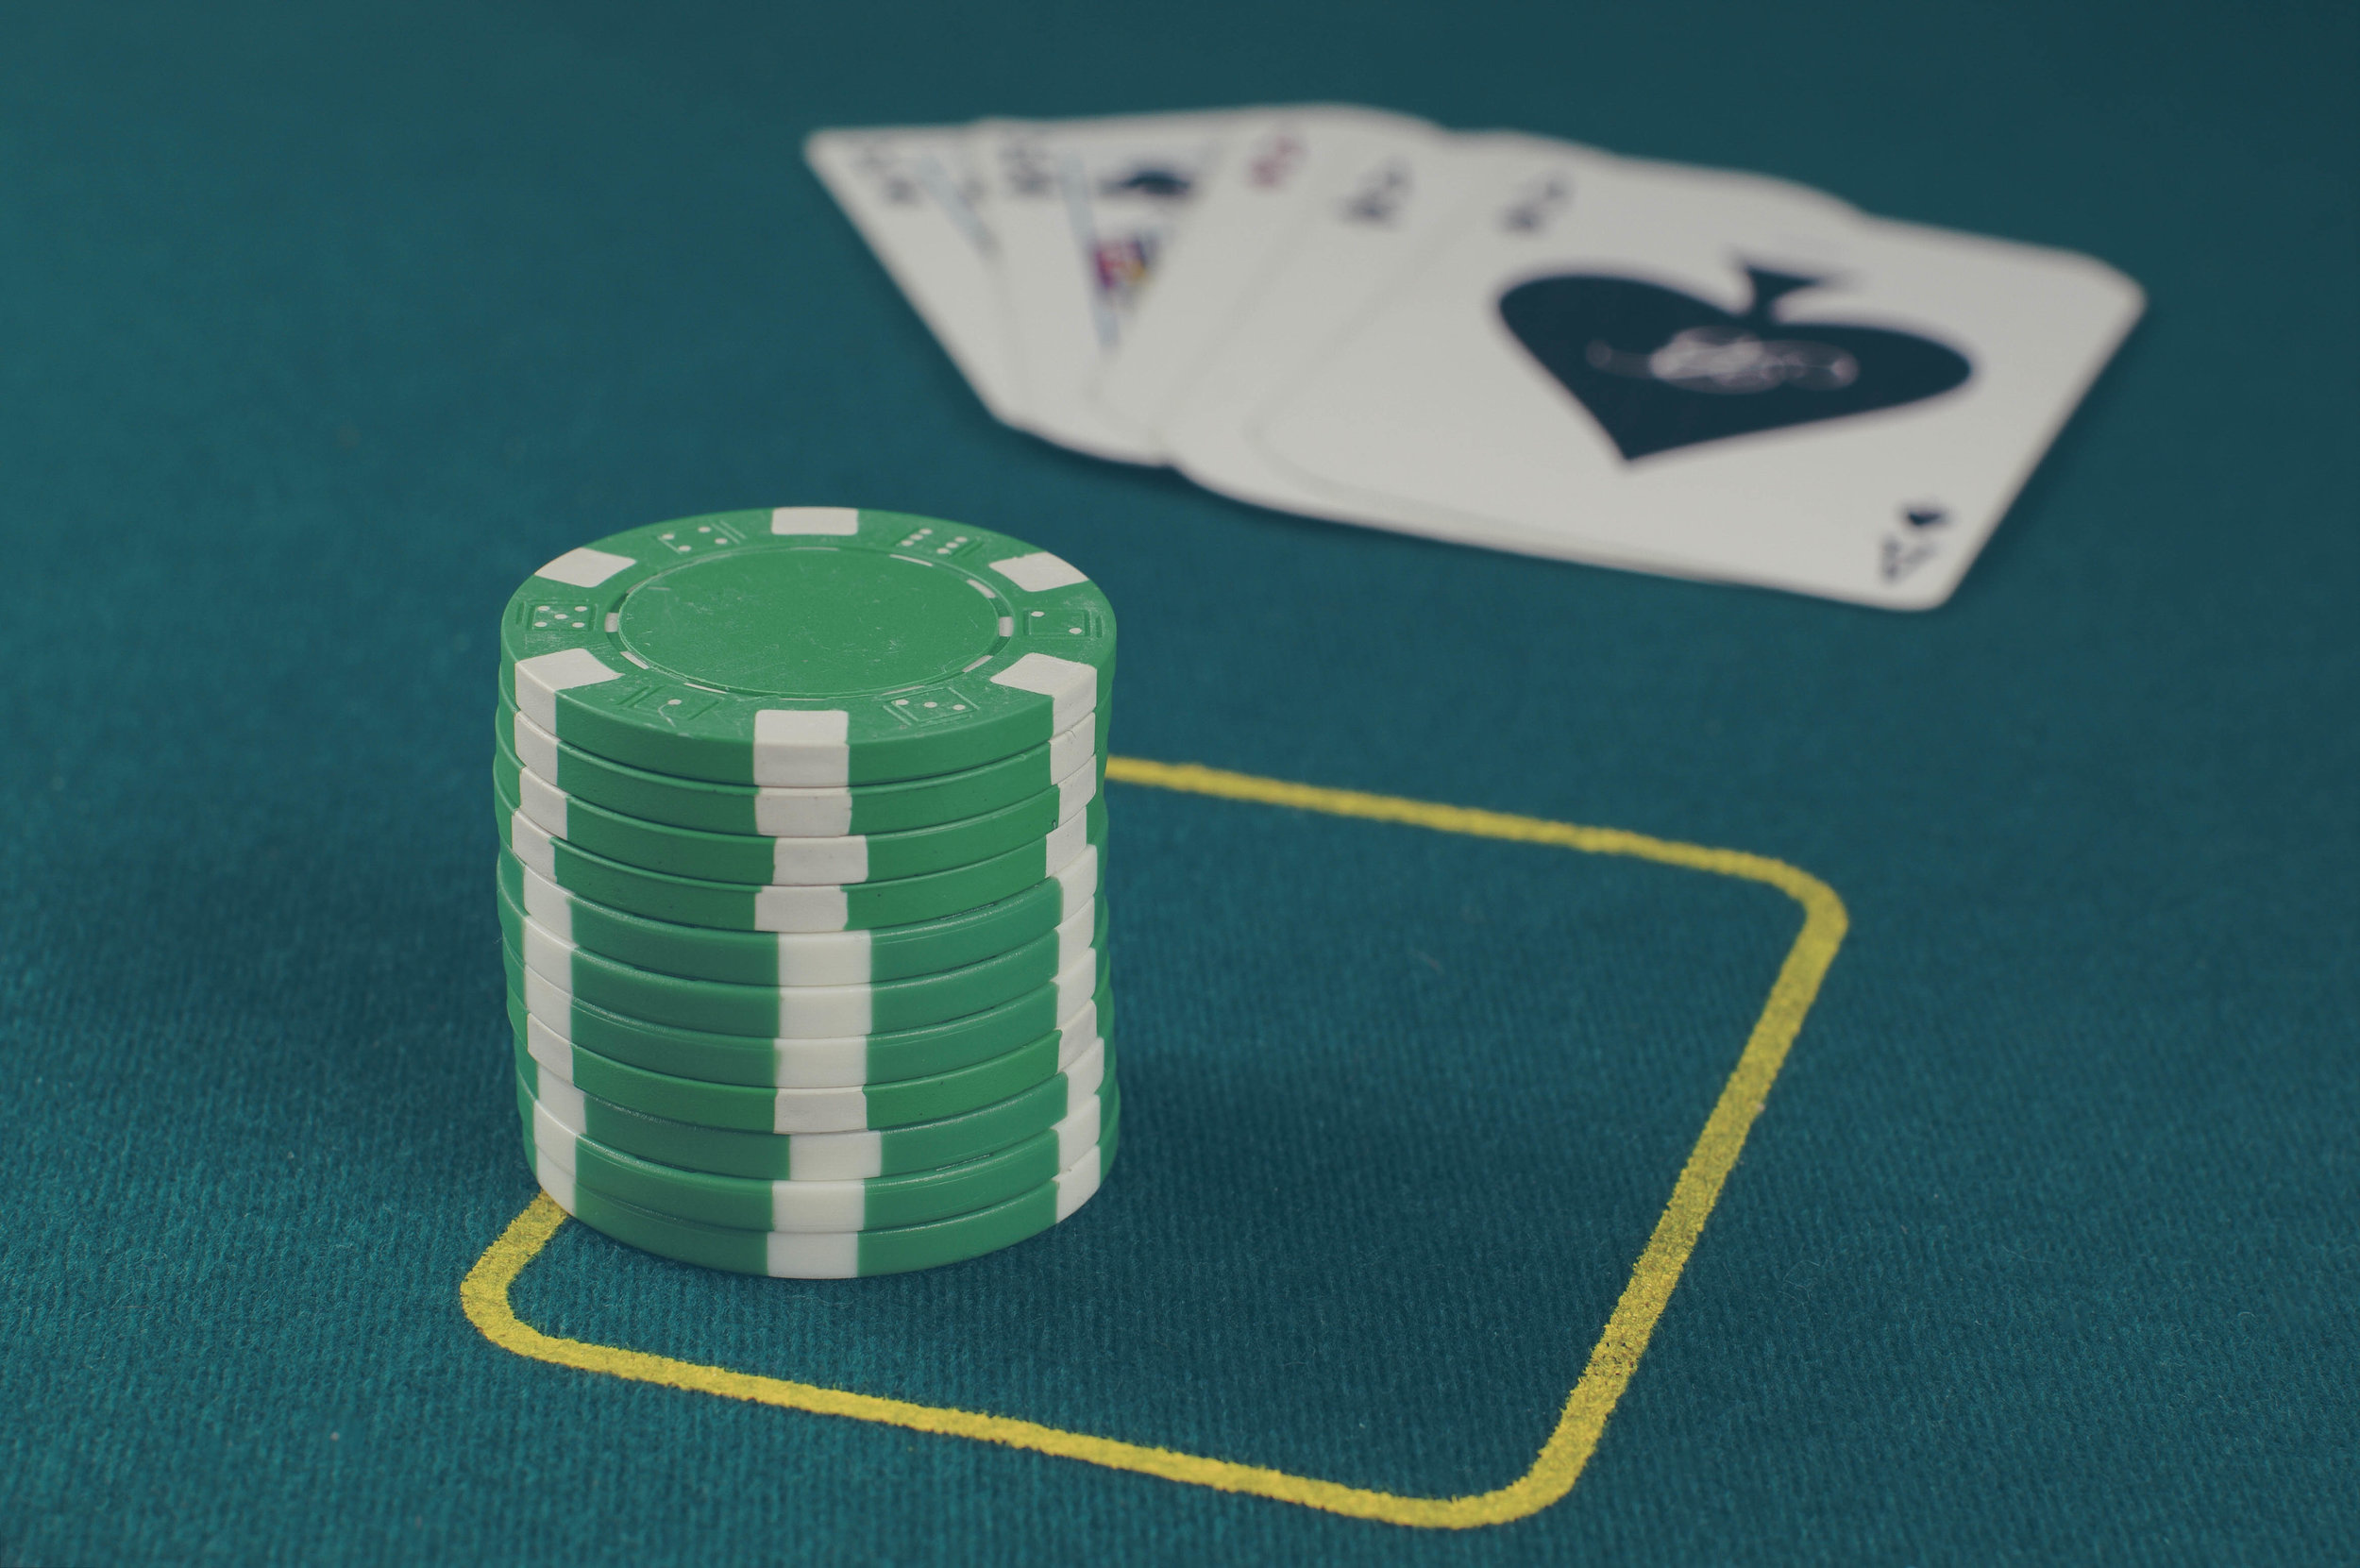 Spanish 21 - A popular variant of Blackjack, Spanish 21 is often favored by players due to having better odds for the player than its' more famous cousin.